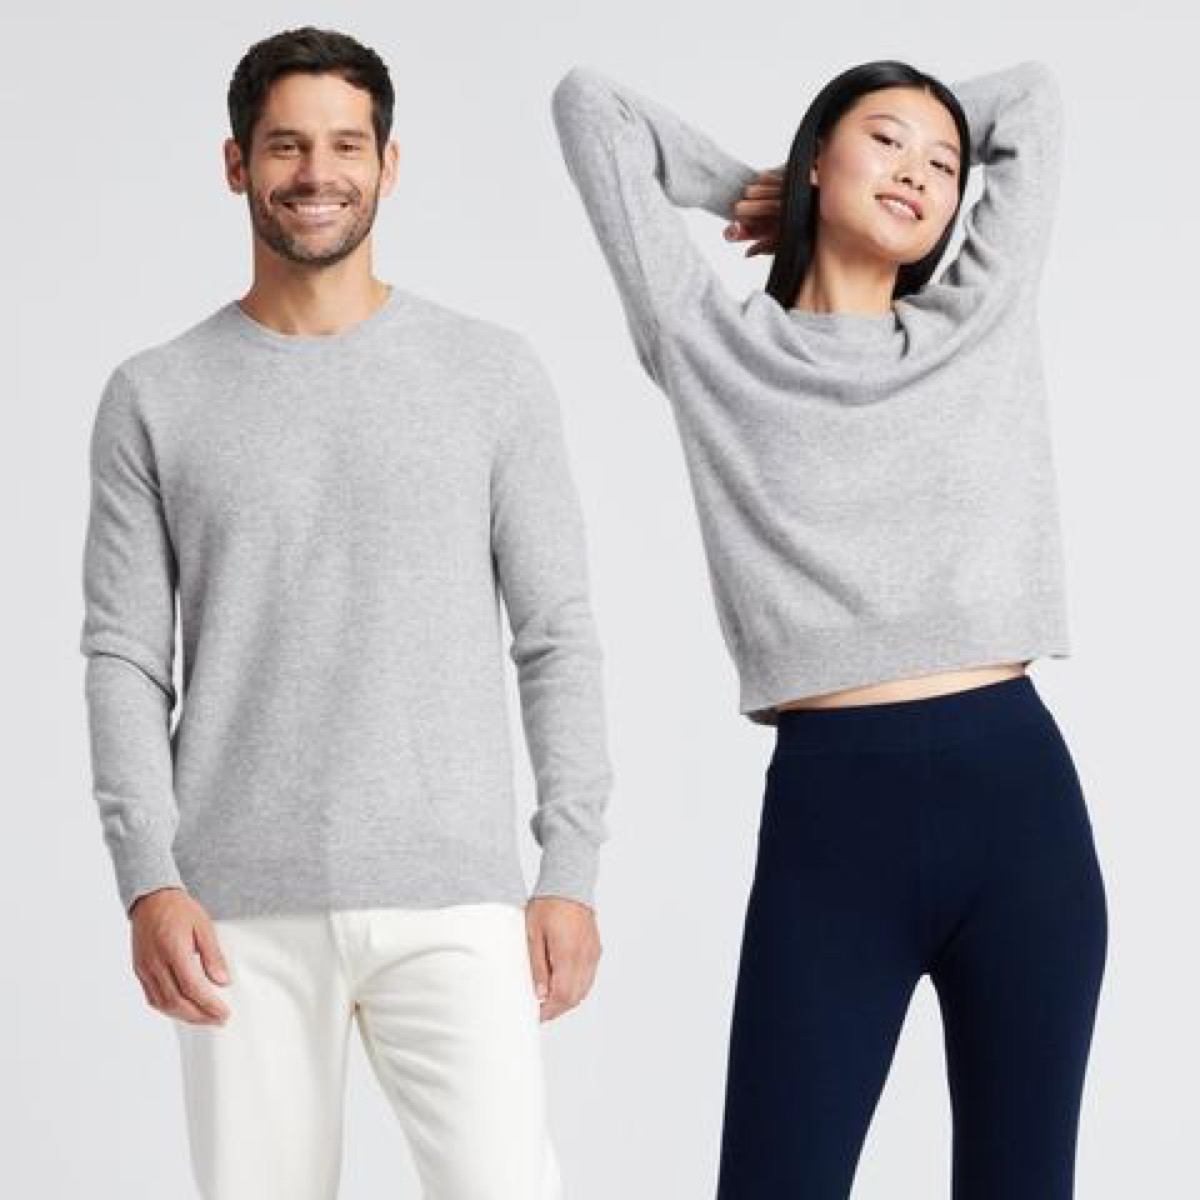 man and woman wearing gray cashmere sweaters